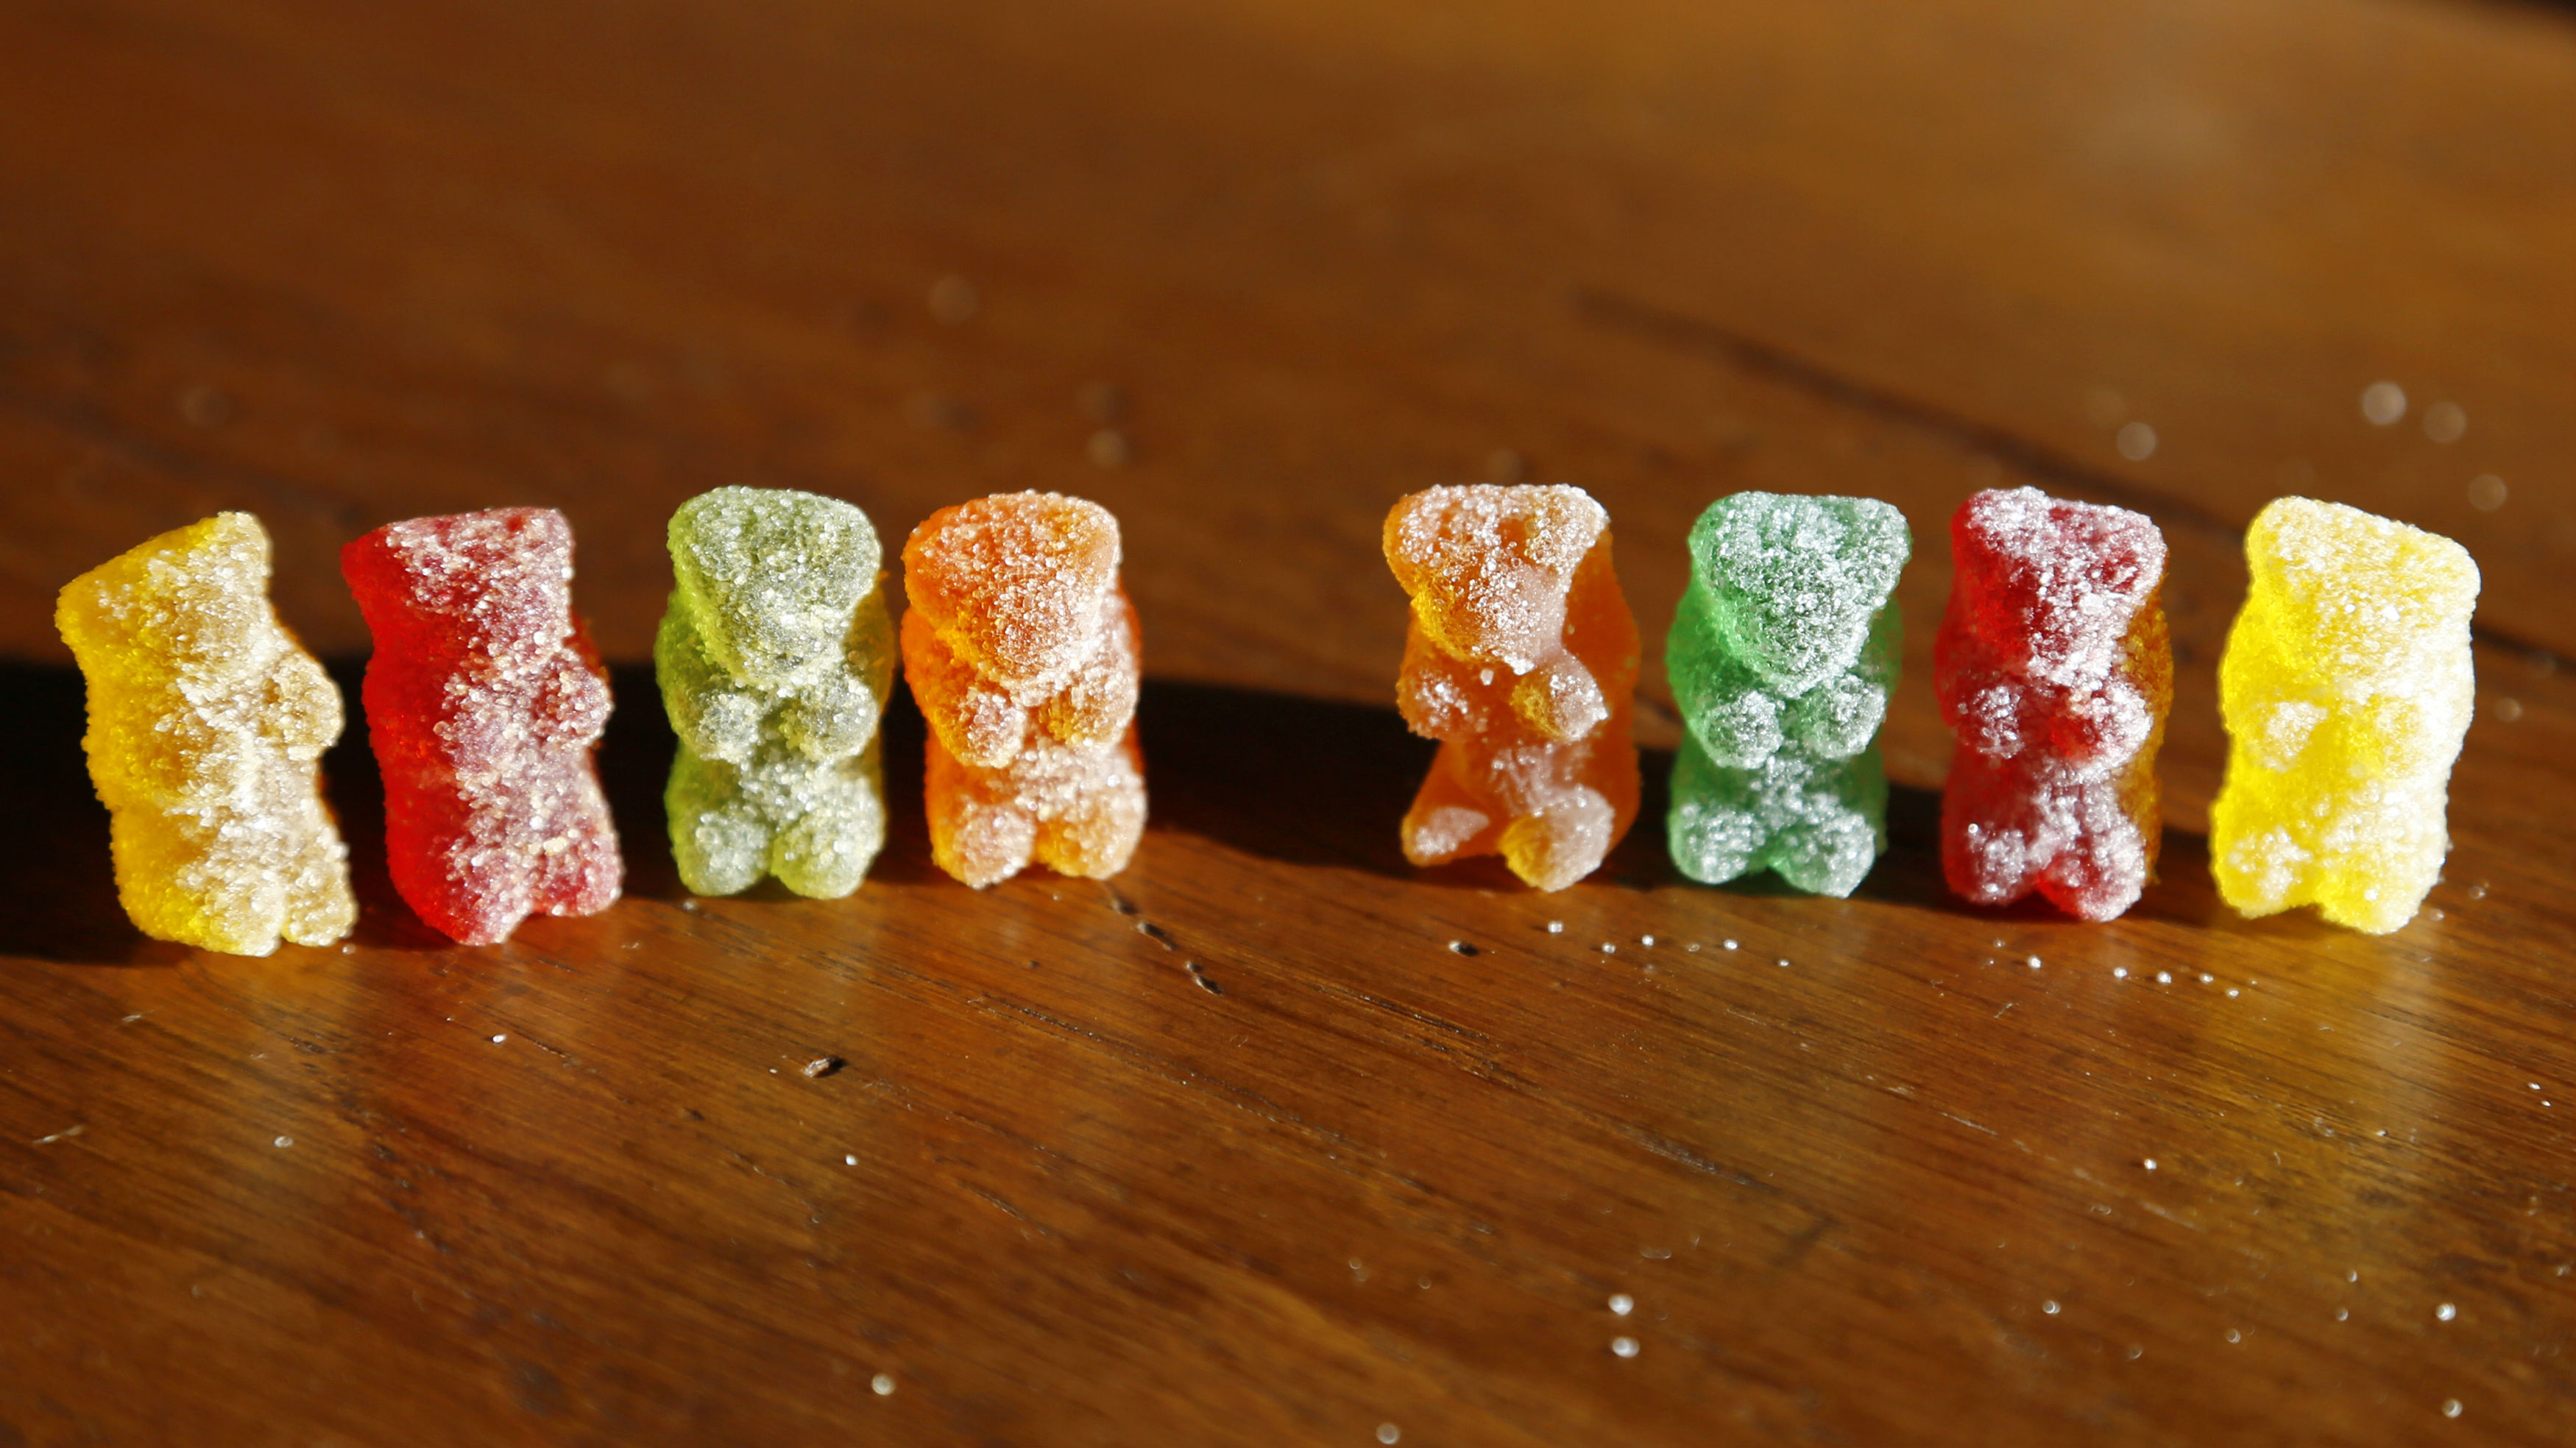 Marijuana-infused sour gummy bear candies (L) are shown next to regular ones at right in a photo illustration in Golden, Colorado October 17, 2014. As children around the country prepare their costumes in anticipation of Halloween goodies on Oct. 31, police in Colorado are warning parents that some treats may not be all they seem. Since Colorado and Washington this year became the first U.S. states to allow recreational sales of pot to adults, much of the public debate has focused on marijuana-infused products such as chocolates, cookies and candies, given their potential to attract children or be eaten accidentally.